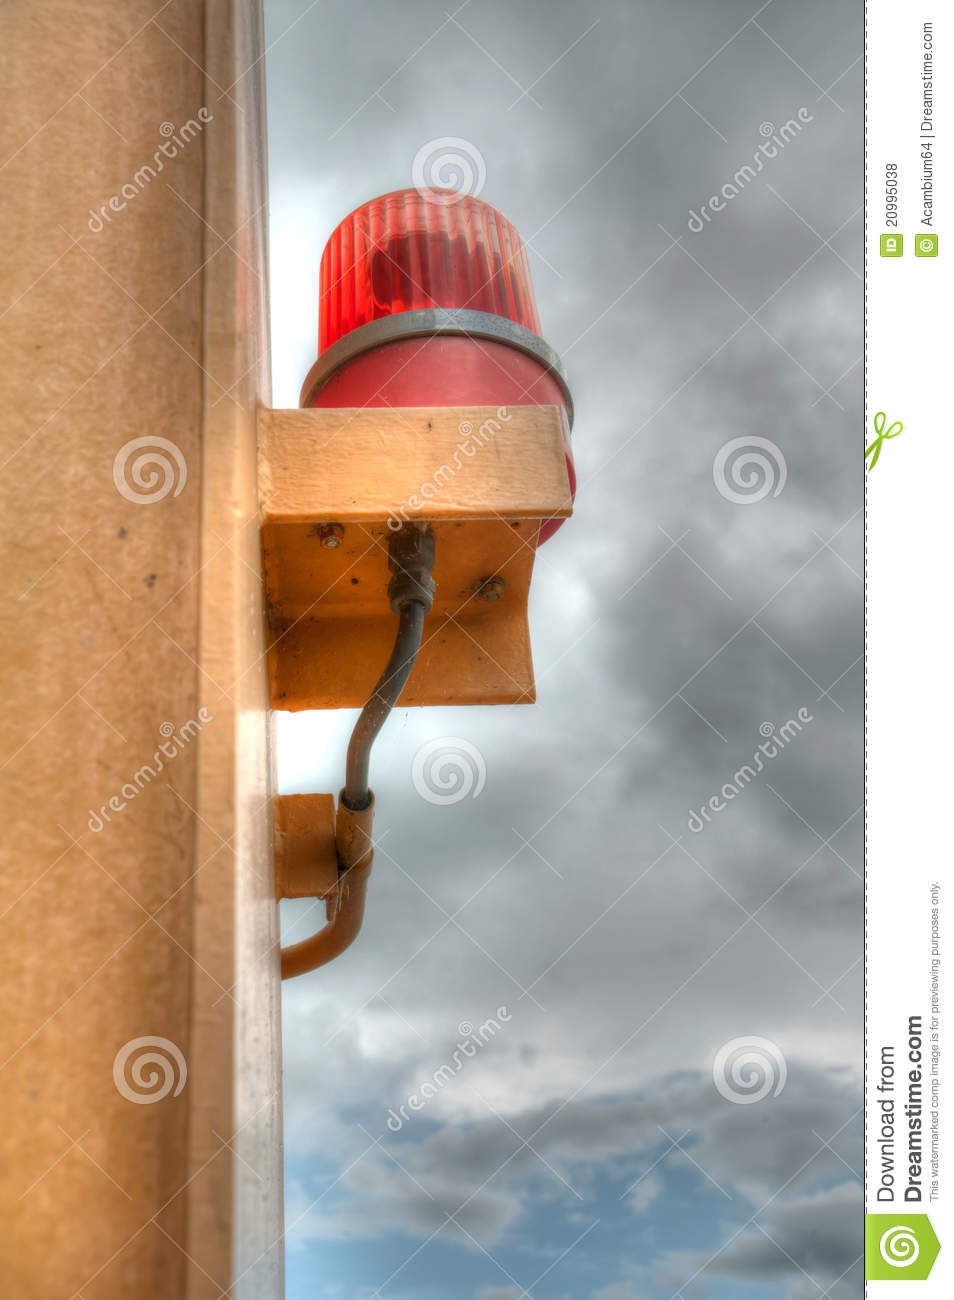 Siren in cloudy sky background hdr stock photo image of siren in cloudy sky background hdr altavistaventures Gallery